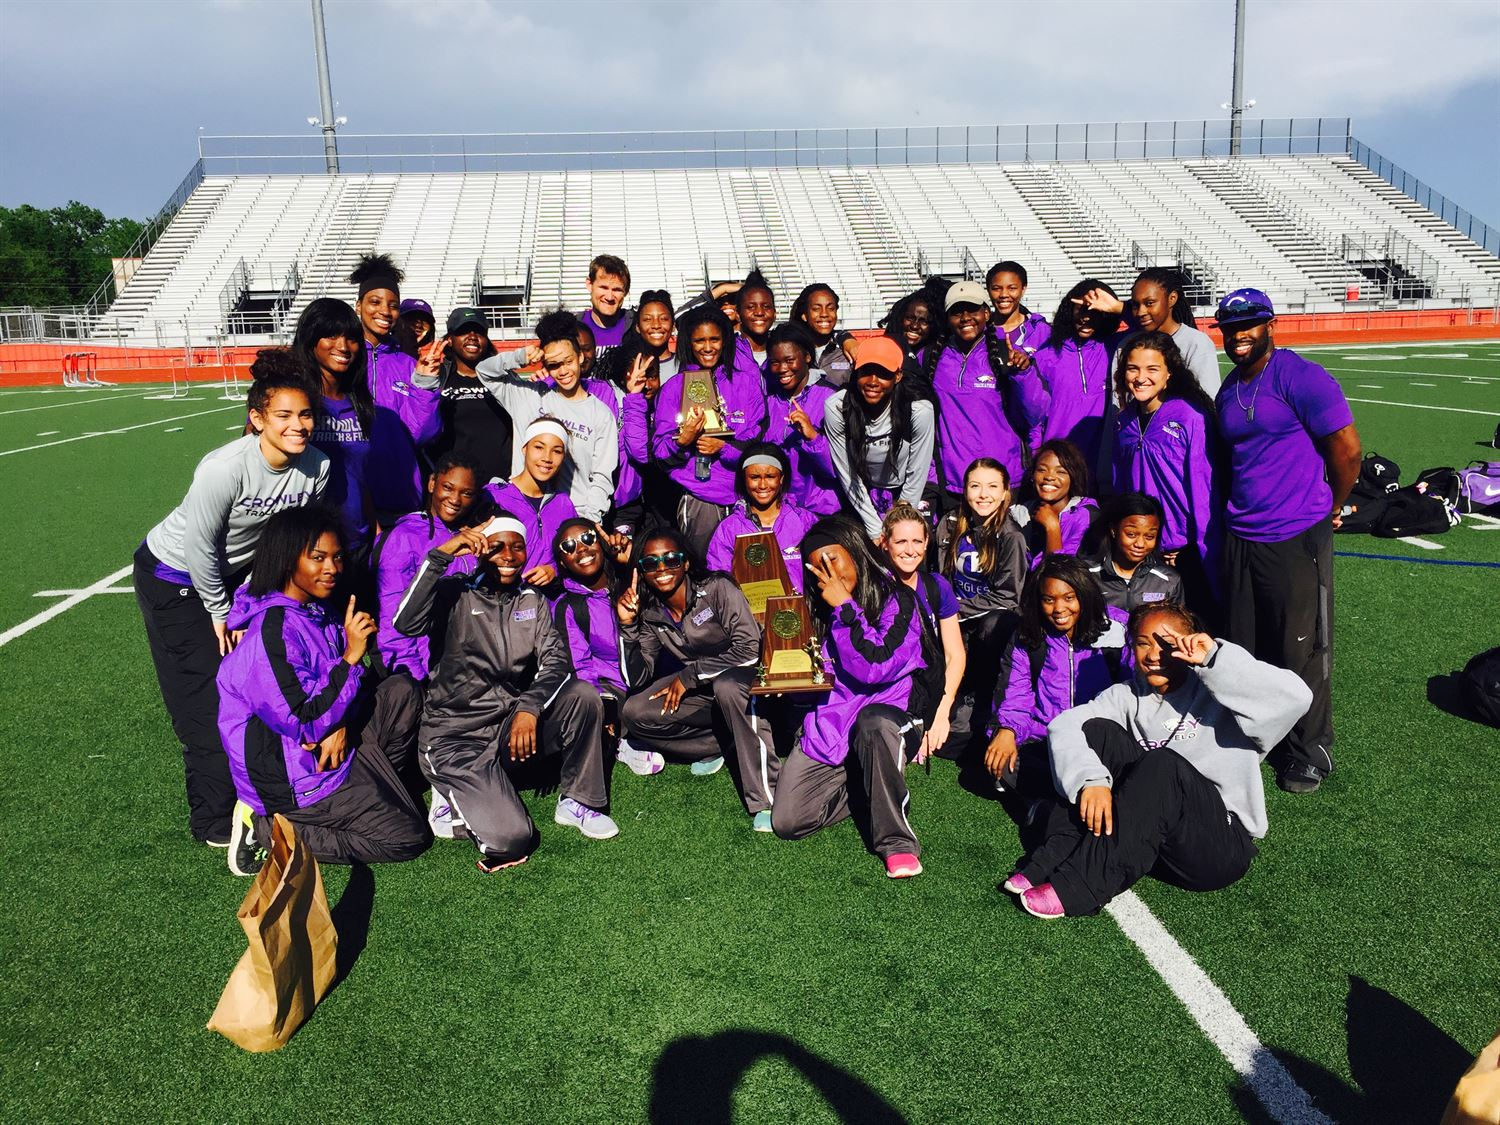 Crowley High School - Girls' Varsity Track & Field